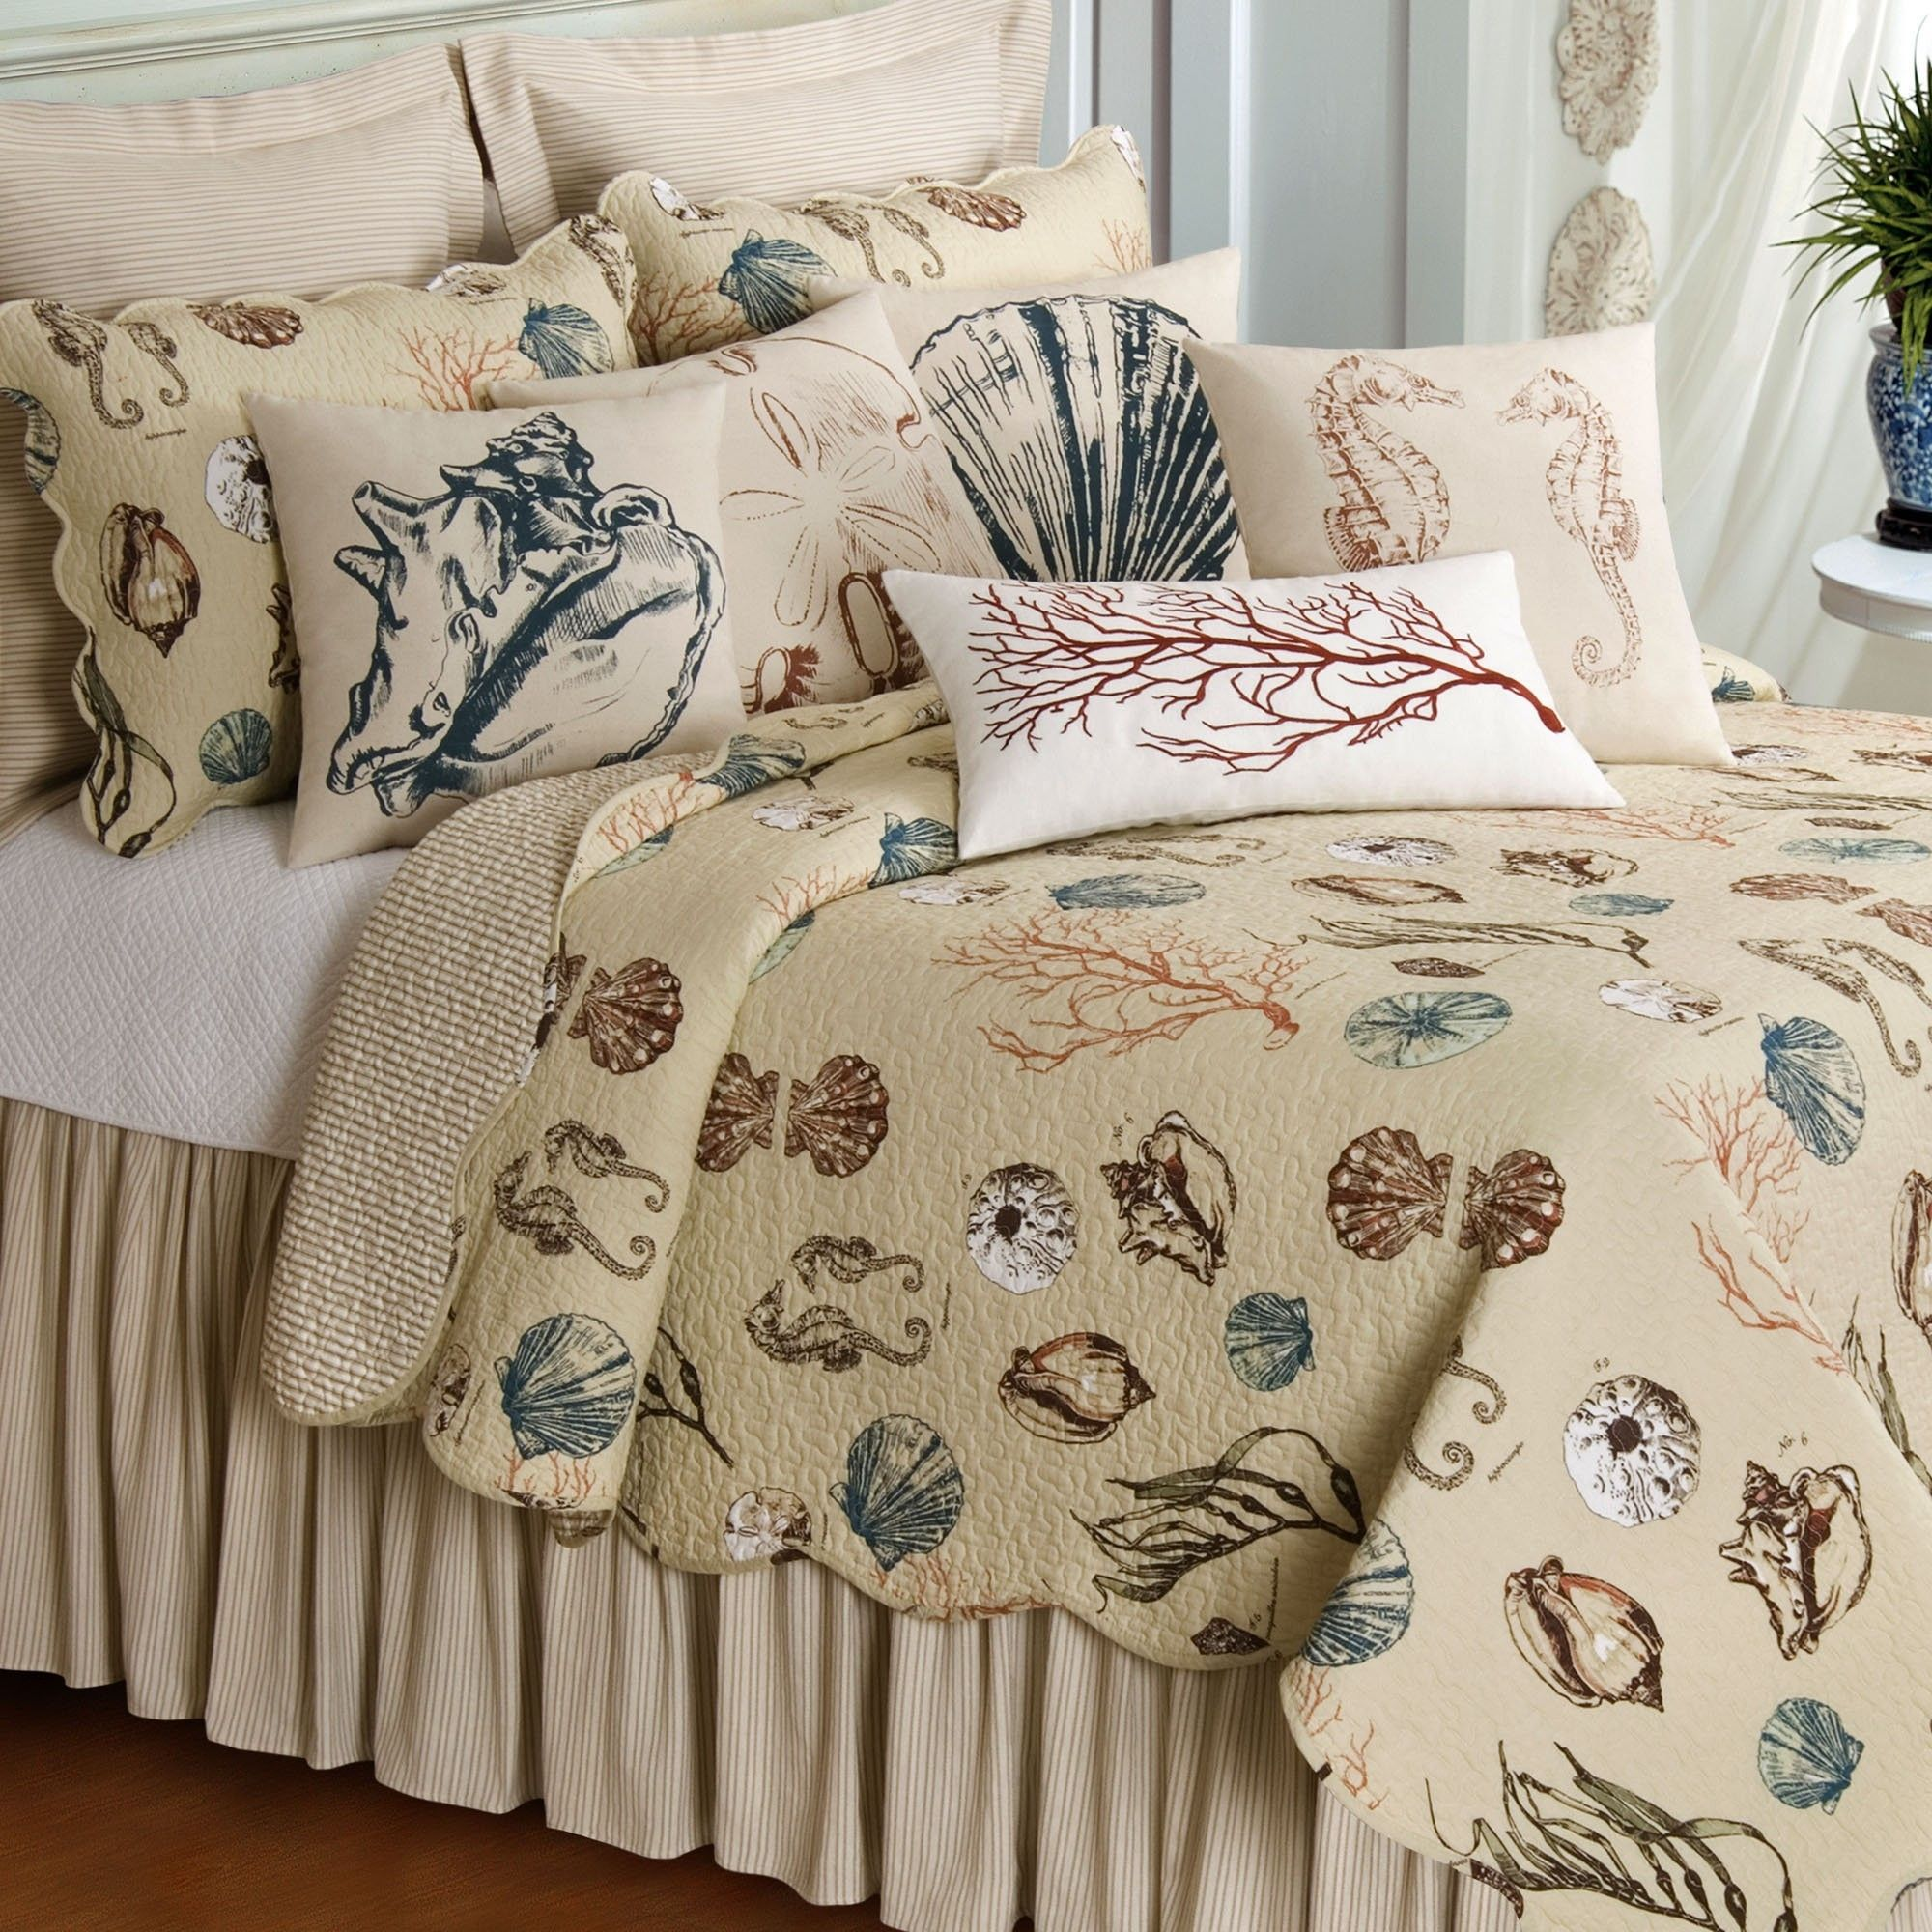 Colorful Coastal Pattern Cotton Blanket Combined Blue Bed Sheets Bett Ideen Haus Style At Home